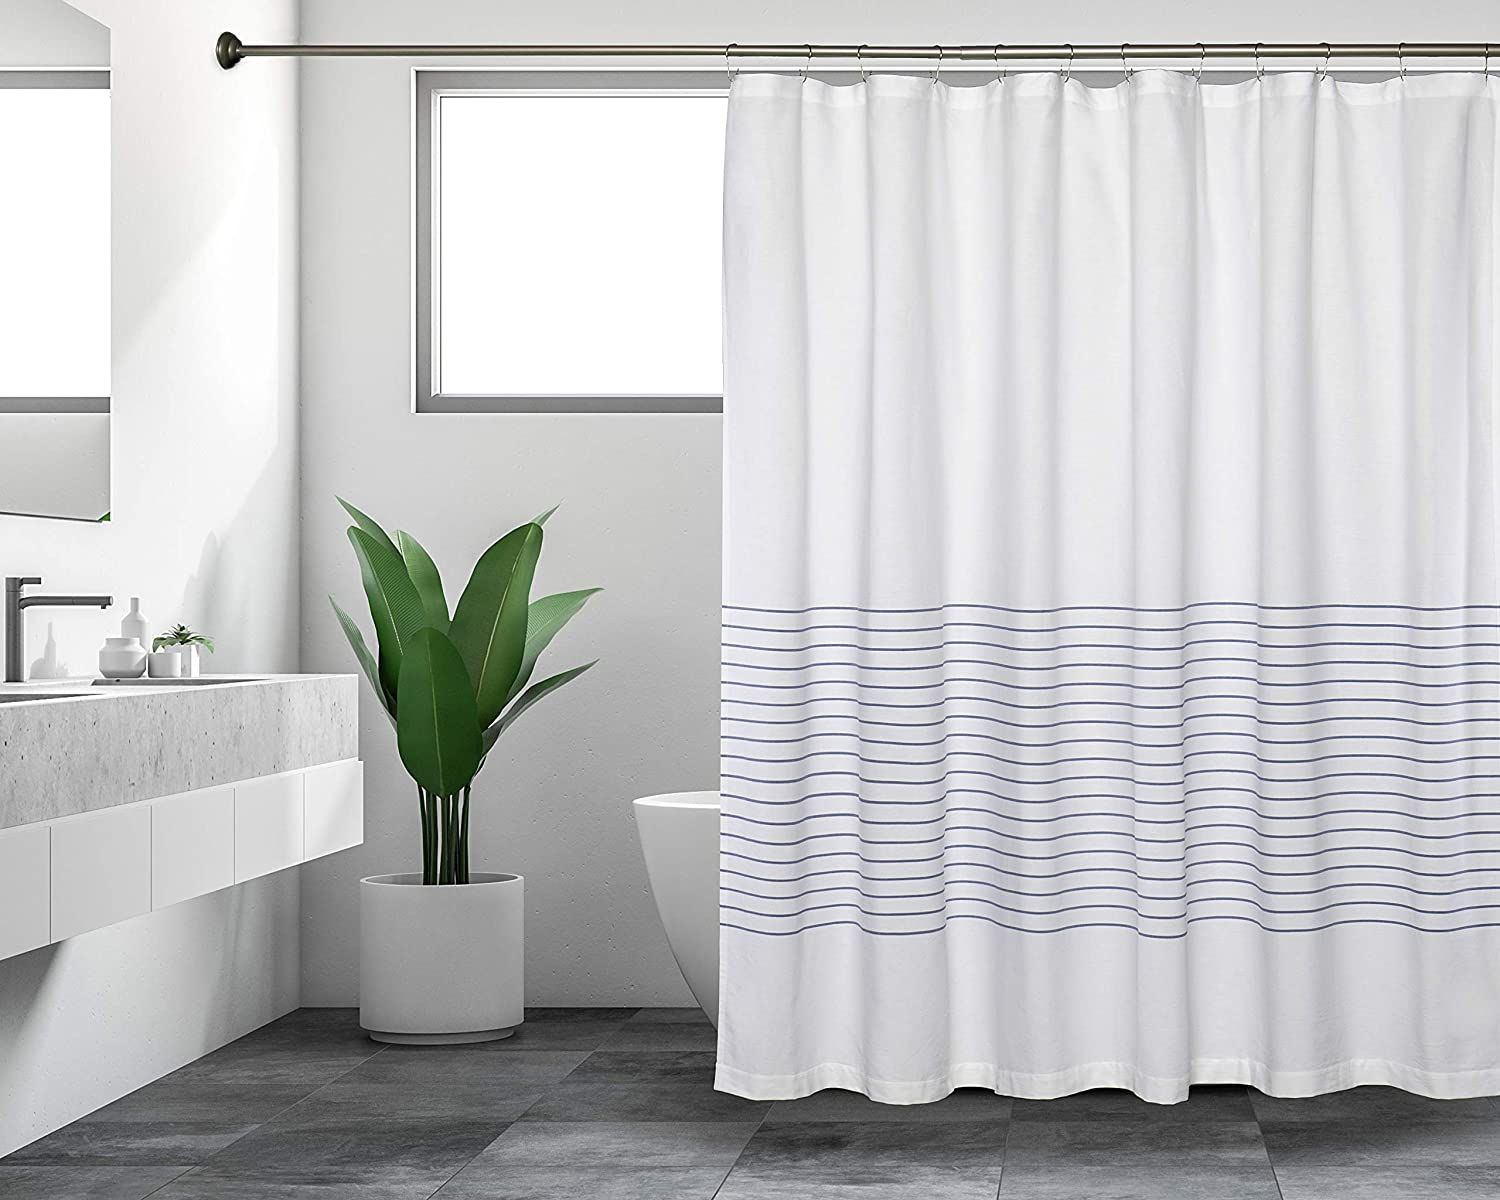 Photo of Sticky Toffee Woven Cotton Fabric Shower Curtain, 72 x 72, White with Thin Stripes – Blue Thin Stripes